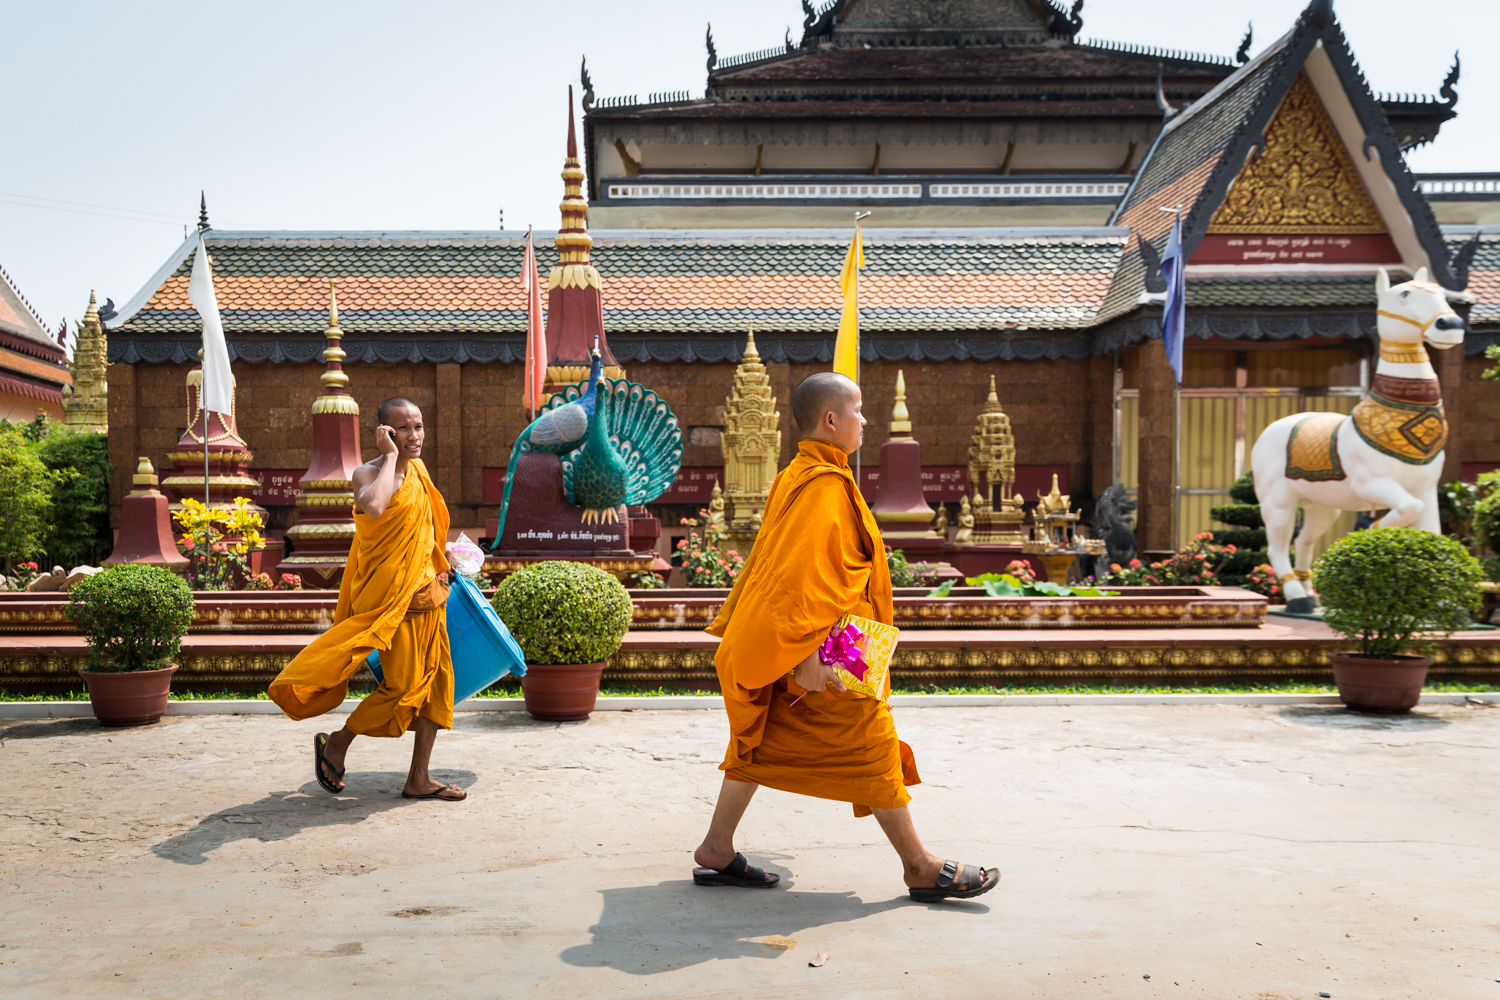 monks-orange-robes-walking-siem-reap-cambodia.jpg